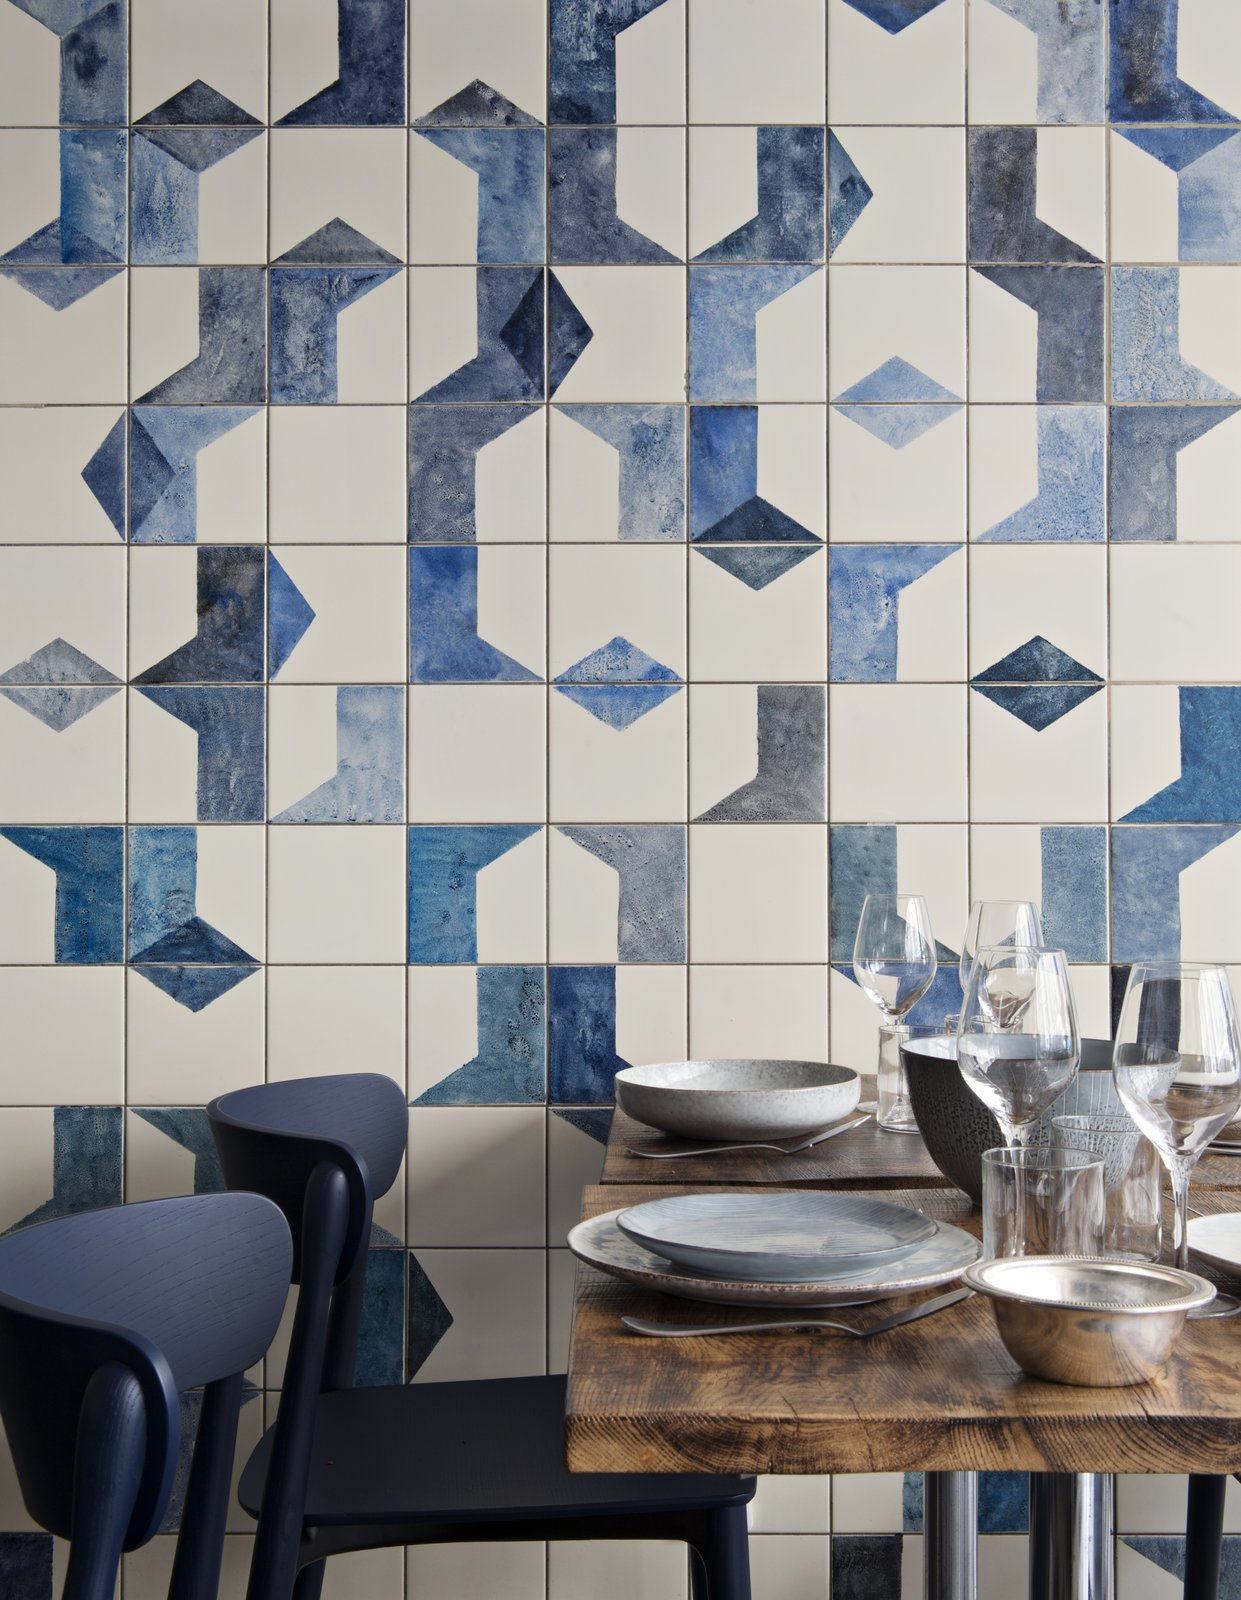 A closer look at the hand-painted, ceramic tile fresco on the ground level of Belle Maison. Bonaventure also specified ceramic dishes and tableware from Broste Copenhagen; the navy blue Nemea chairs are from Pedrali.  Photo 3 of 6 in A Parisian Seafood Restaurant, Swimming in Shades of Blue